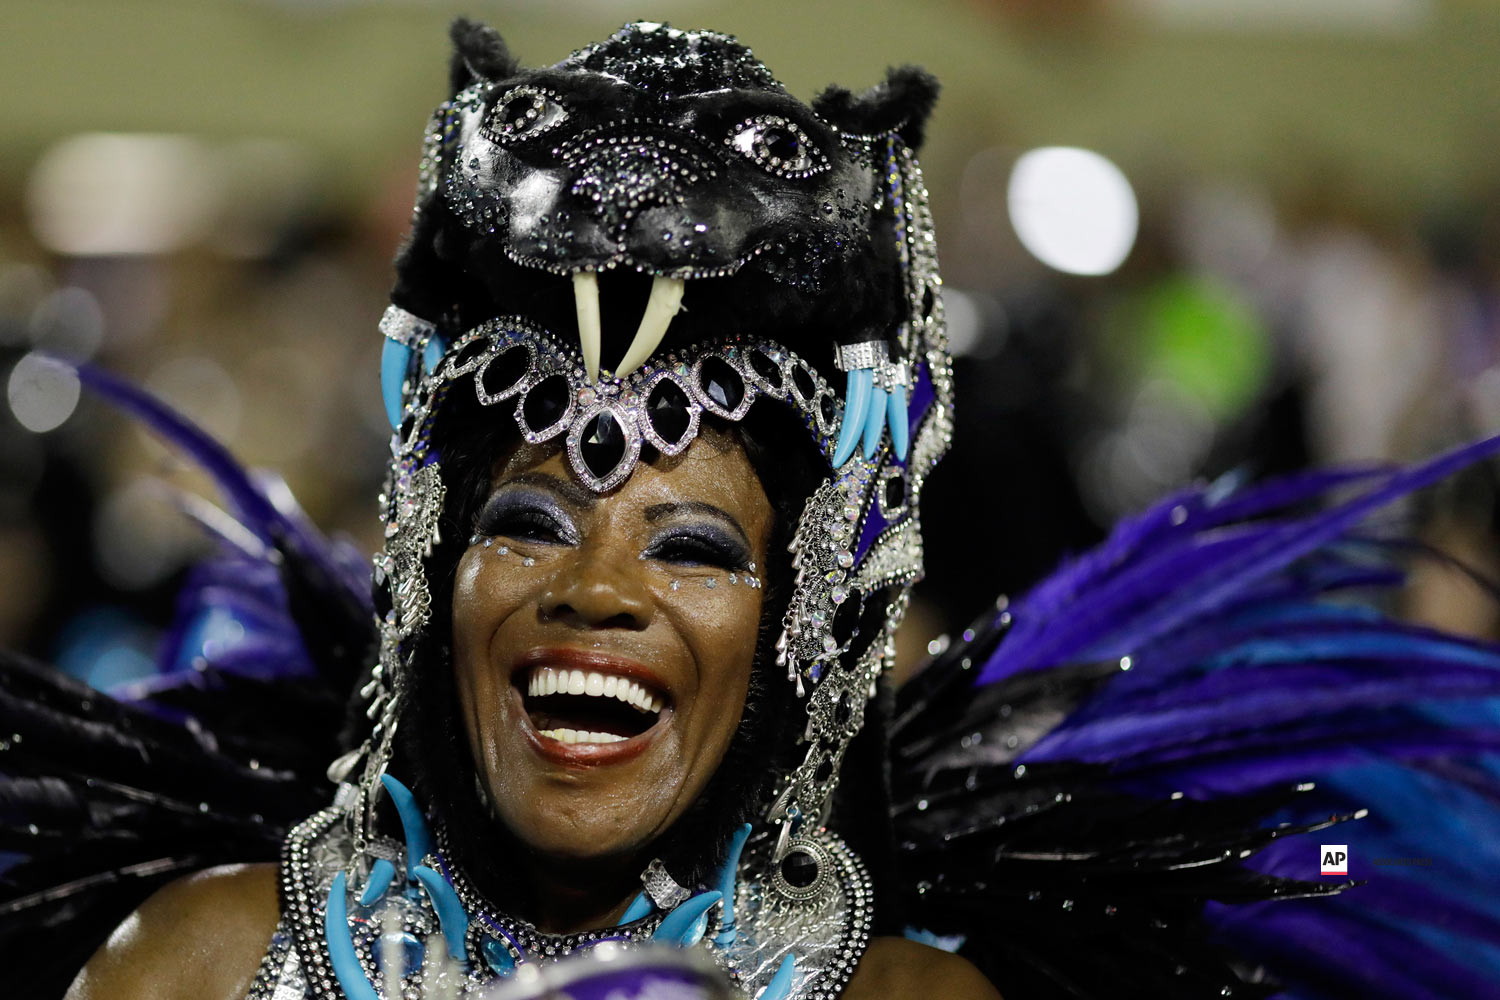 A performer from the Beija Flor samba school parades during Carnival celebrations at the Sambadrome in Rio de Janeiro, Brazil, Monday, March 4, 2019. (AP Photo/Leo Correa)